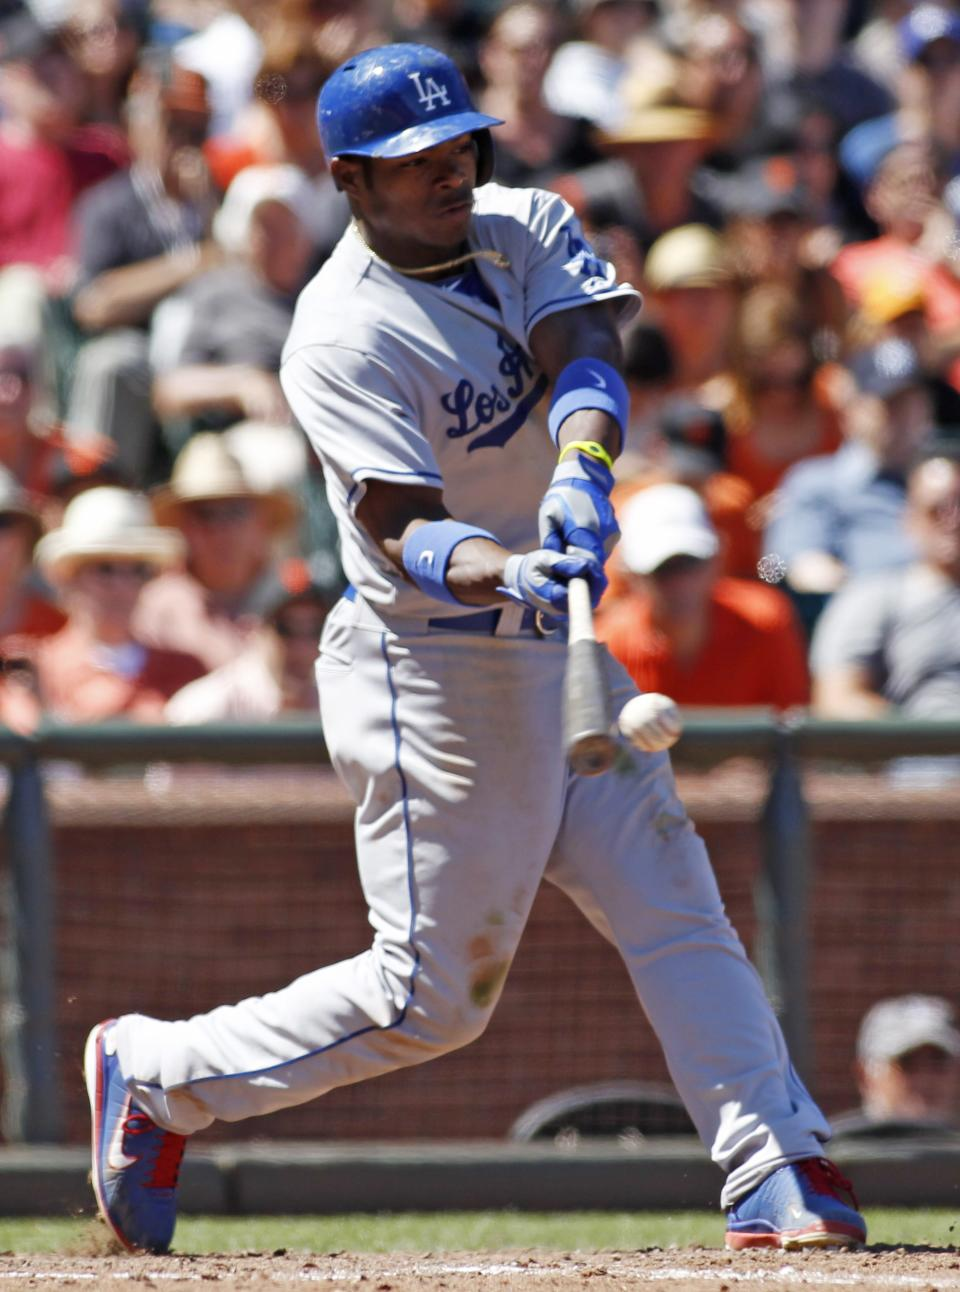 Los Angeles Dodgers' Yasiel Puig hits a single against the San Francisco Giants during the ninth inning of a baseball game in San Francisco, Sunday, July 7, 2013. The Dodgers beat the Giants 4-1. (AP Photo/George Nikitin)